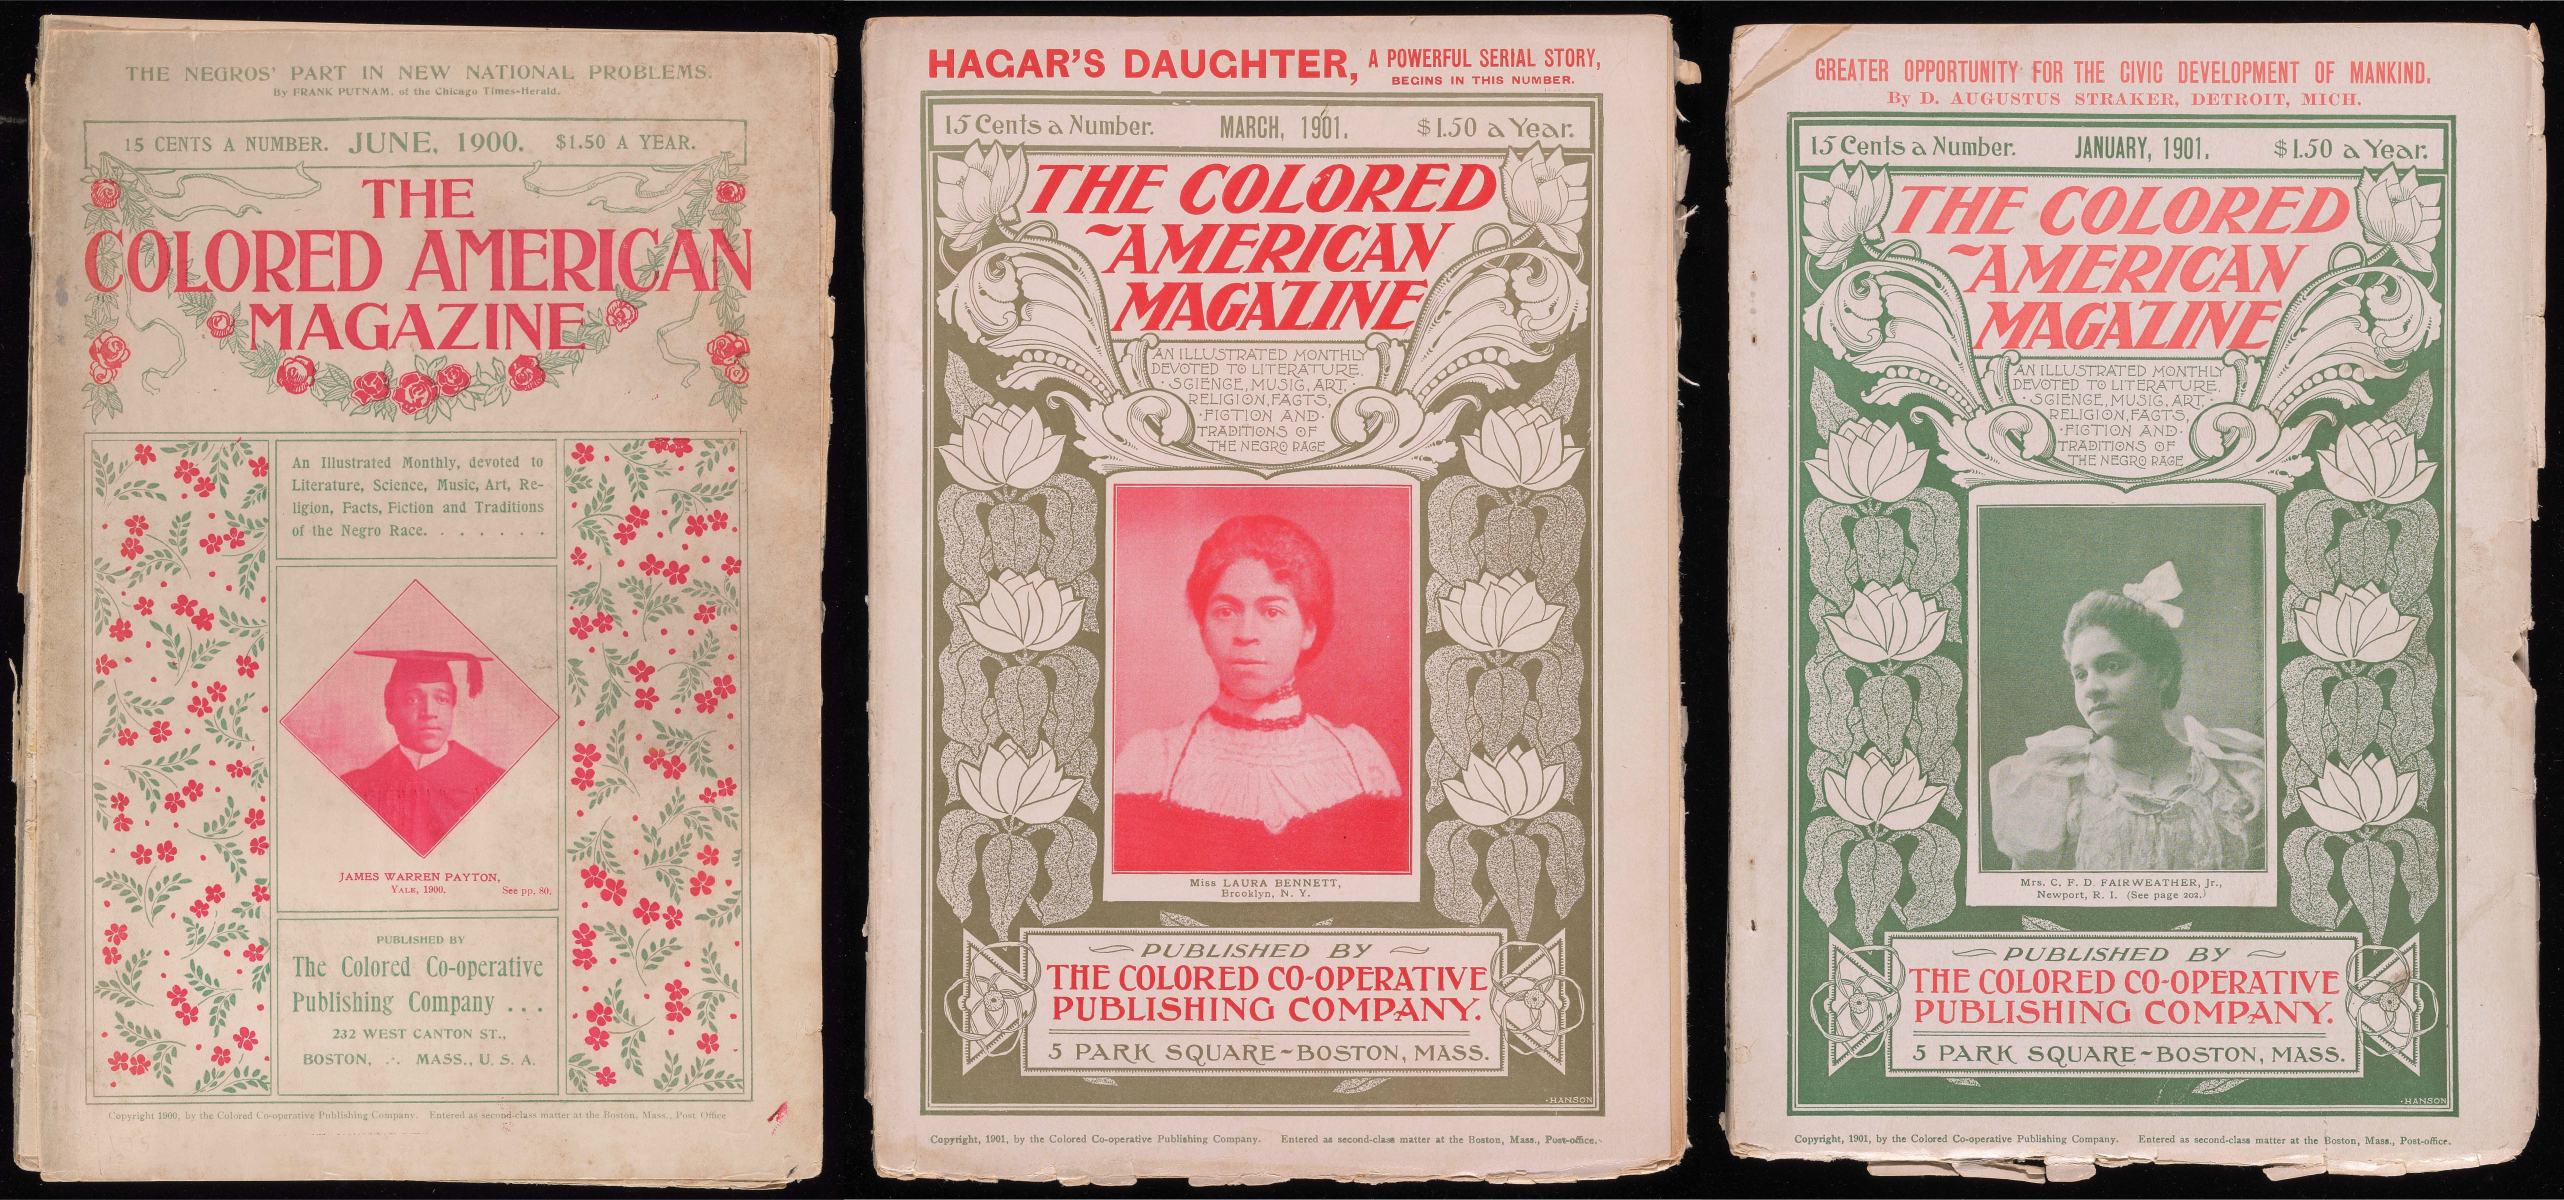 Covers of The Colored American Magazine, reproduced from The Digital Colored American Magazine, coloredamerican.org. Original held at the Beinecke Rare Book and Manuscript Library, Yale University.